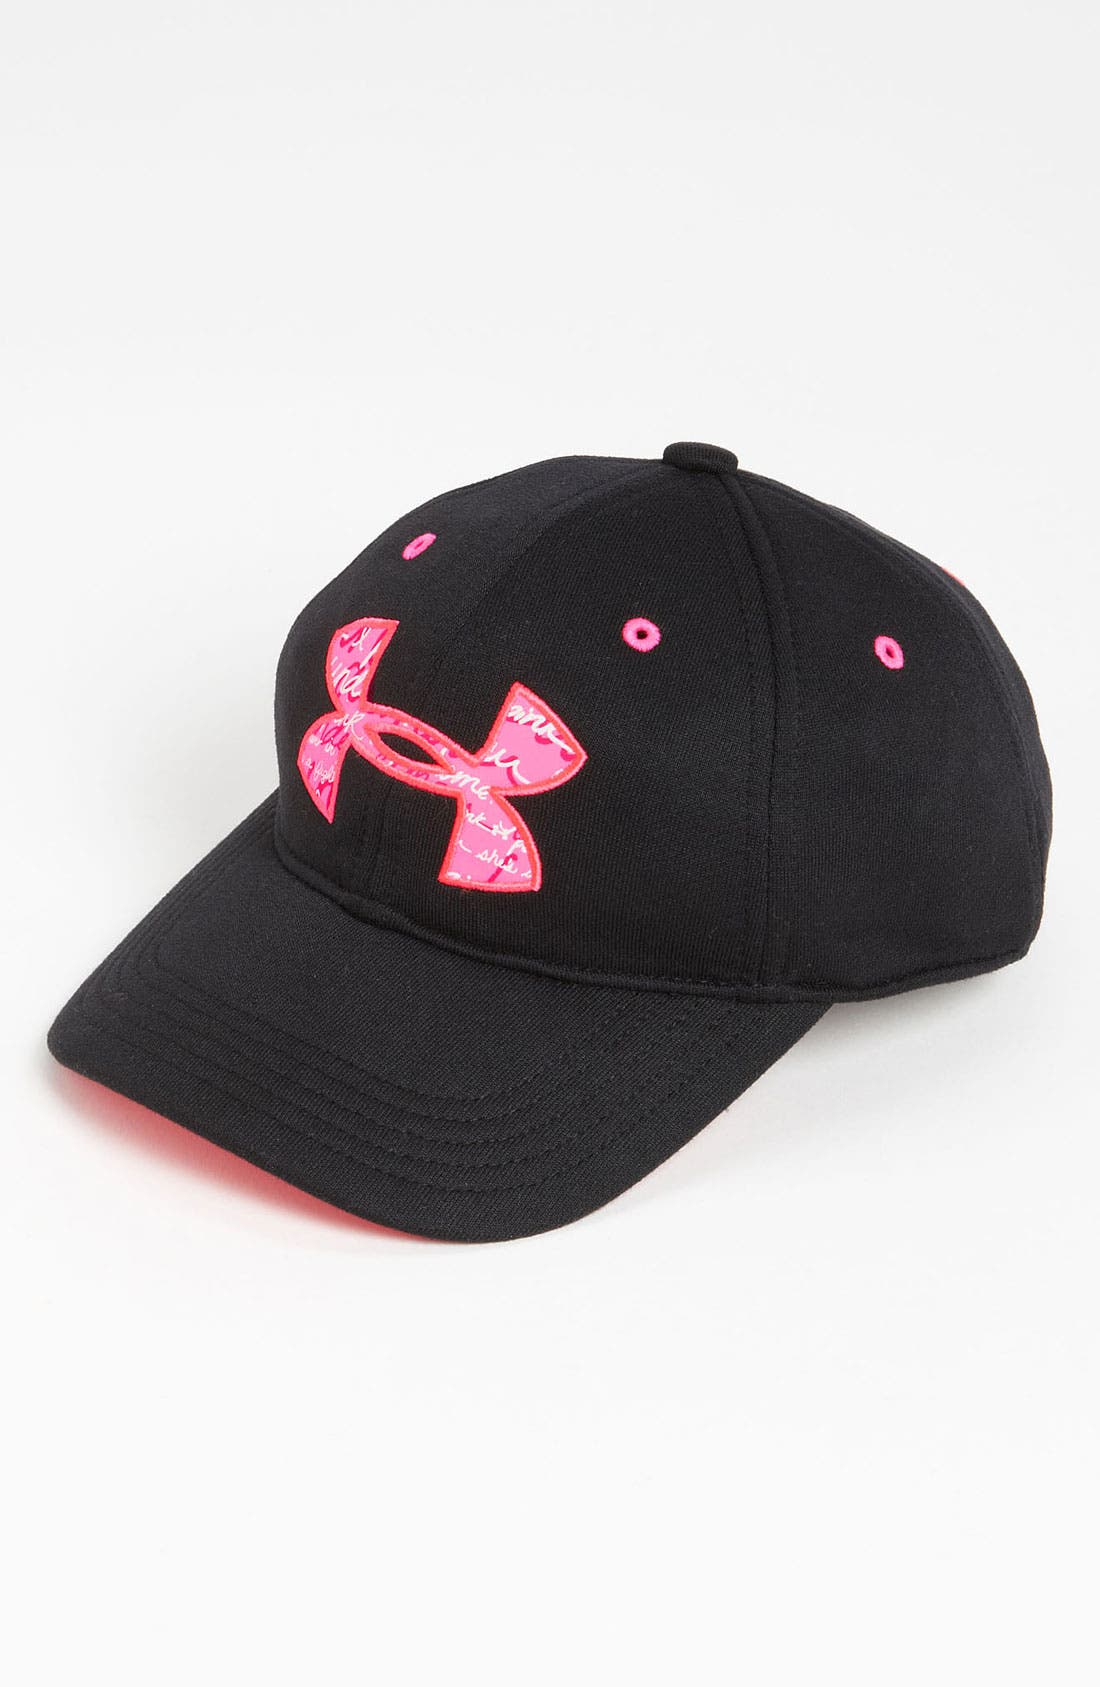 Main Image - Under Armour Adjustable Cap (Girls)